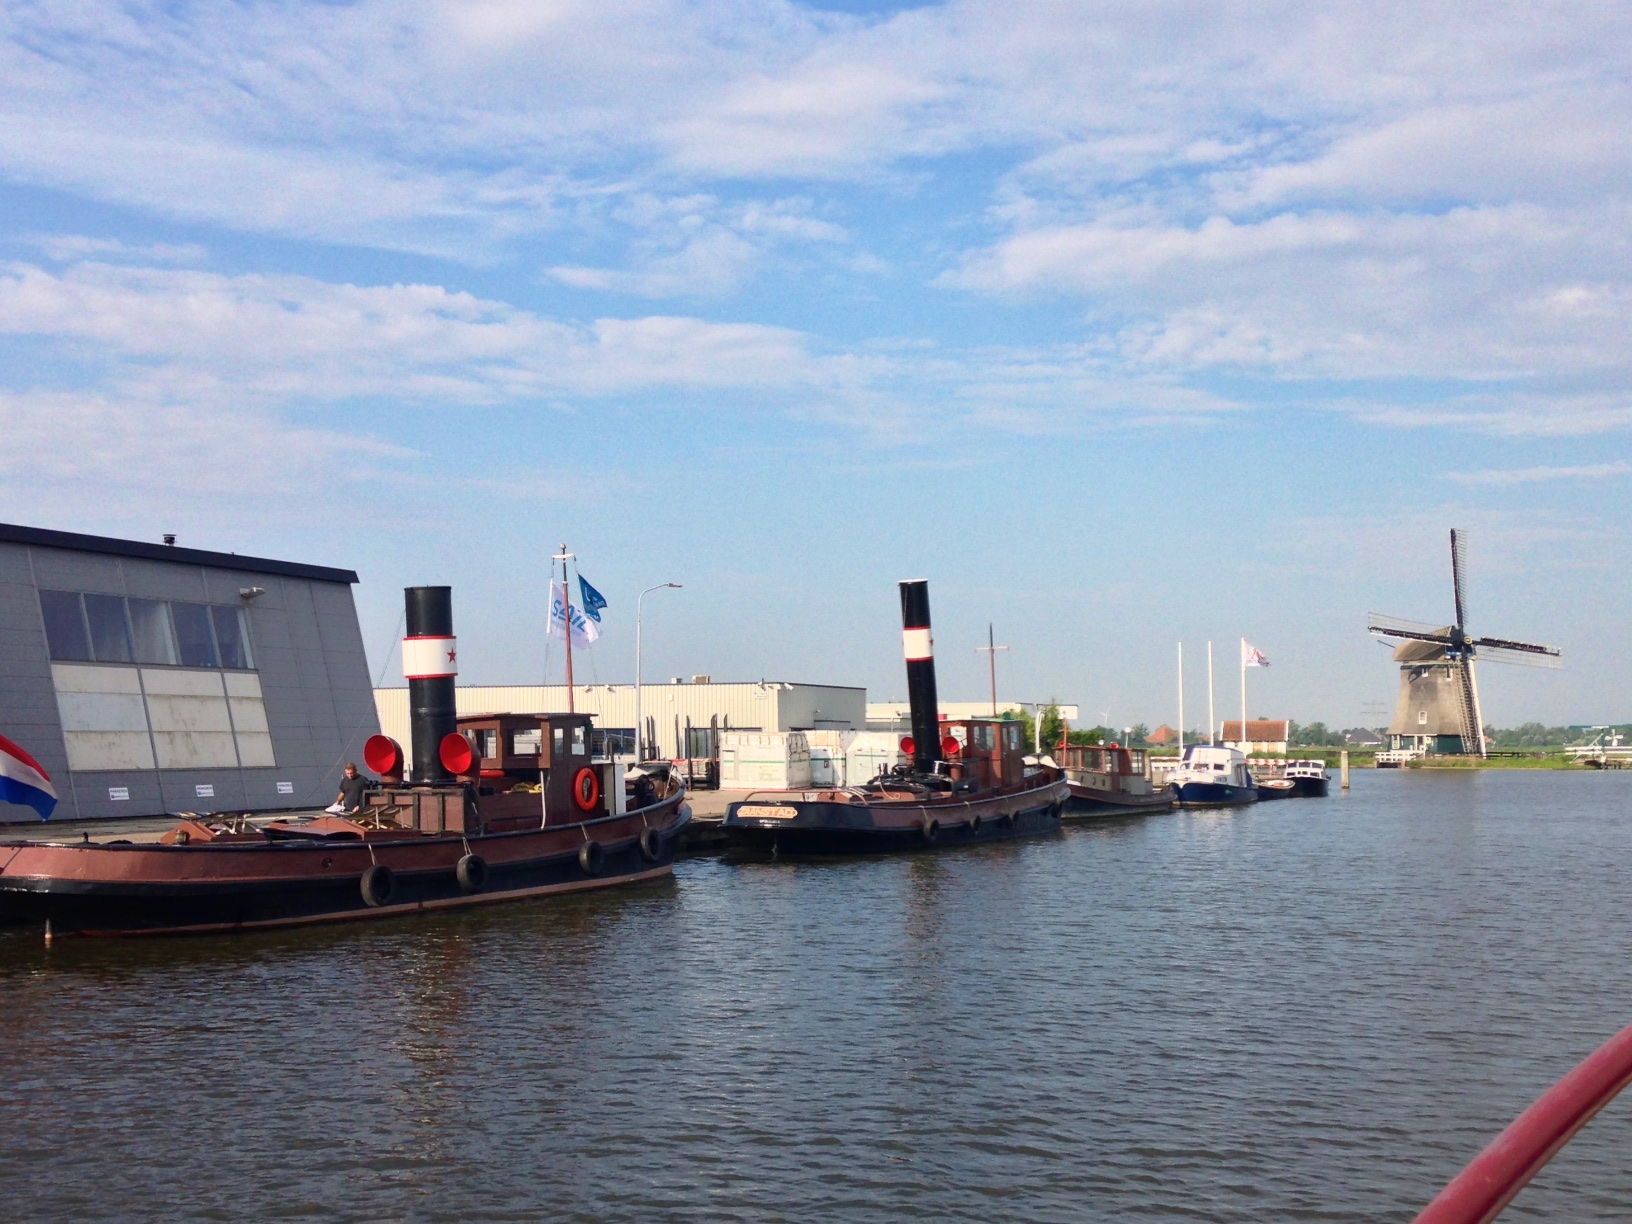 A lovely pair of old tugs, in a typical Dutch setting, obviously having participated in Sail Amsterdam